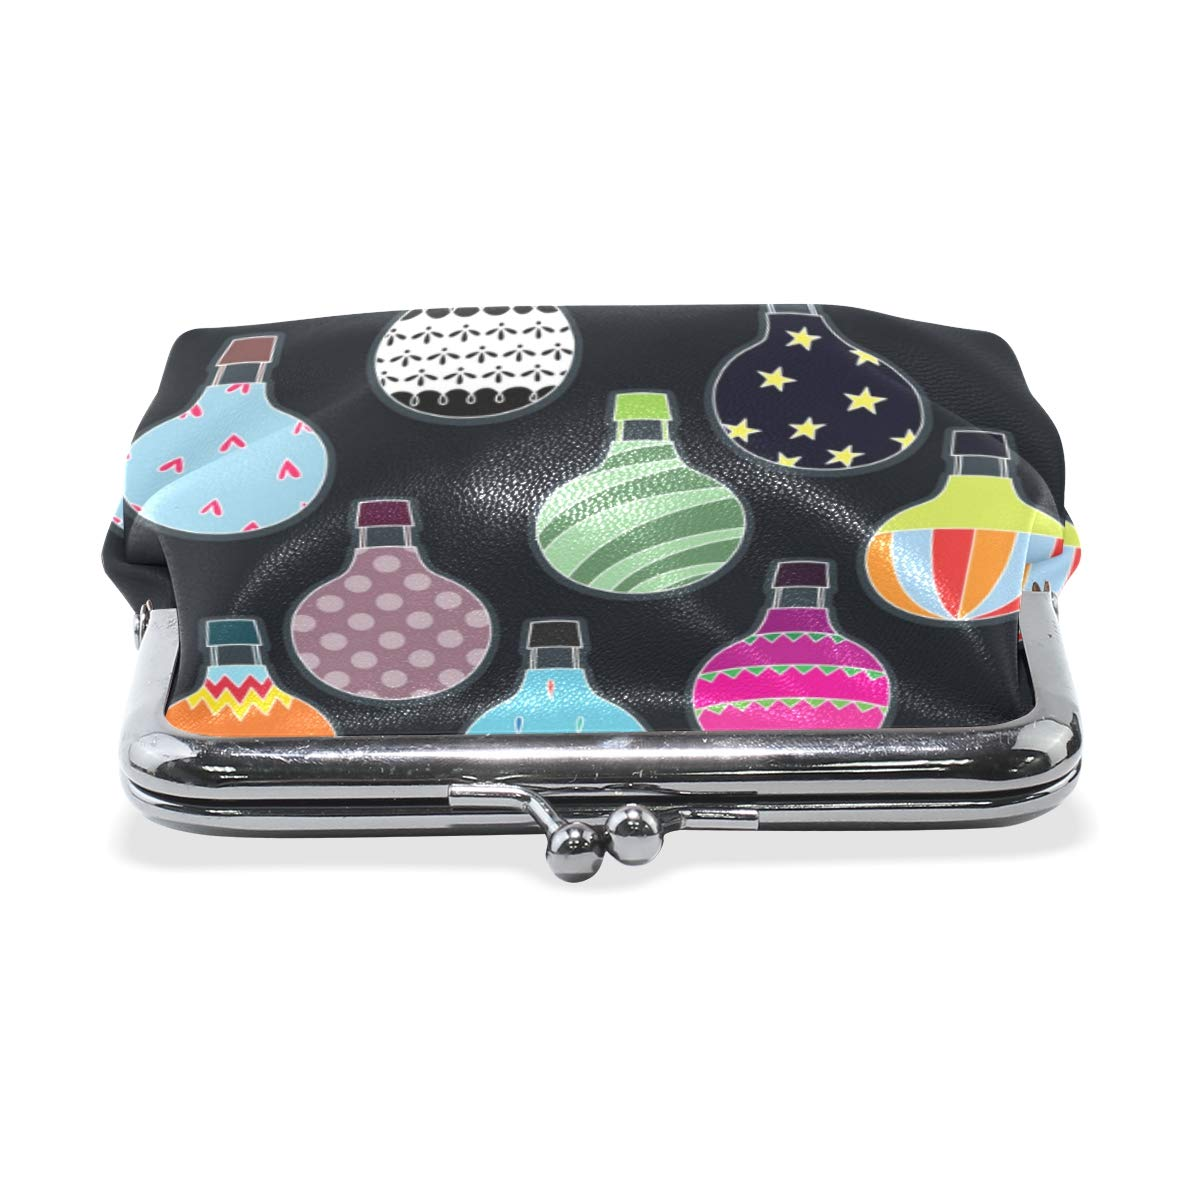 Exquisite Buckle Coin Purses Camo Hot Air Balloons Mini Wallet Key Card Holder Purse for Women